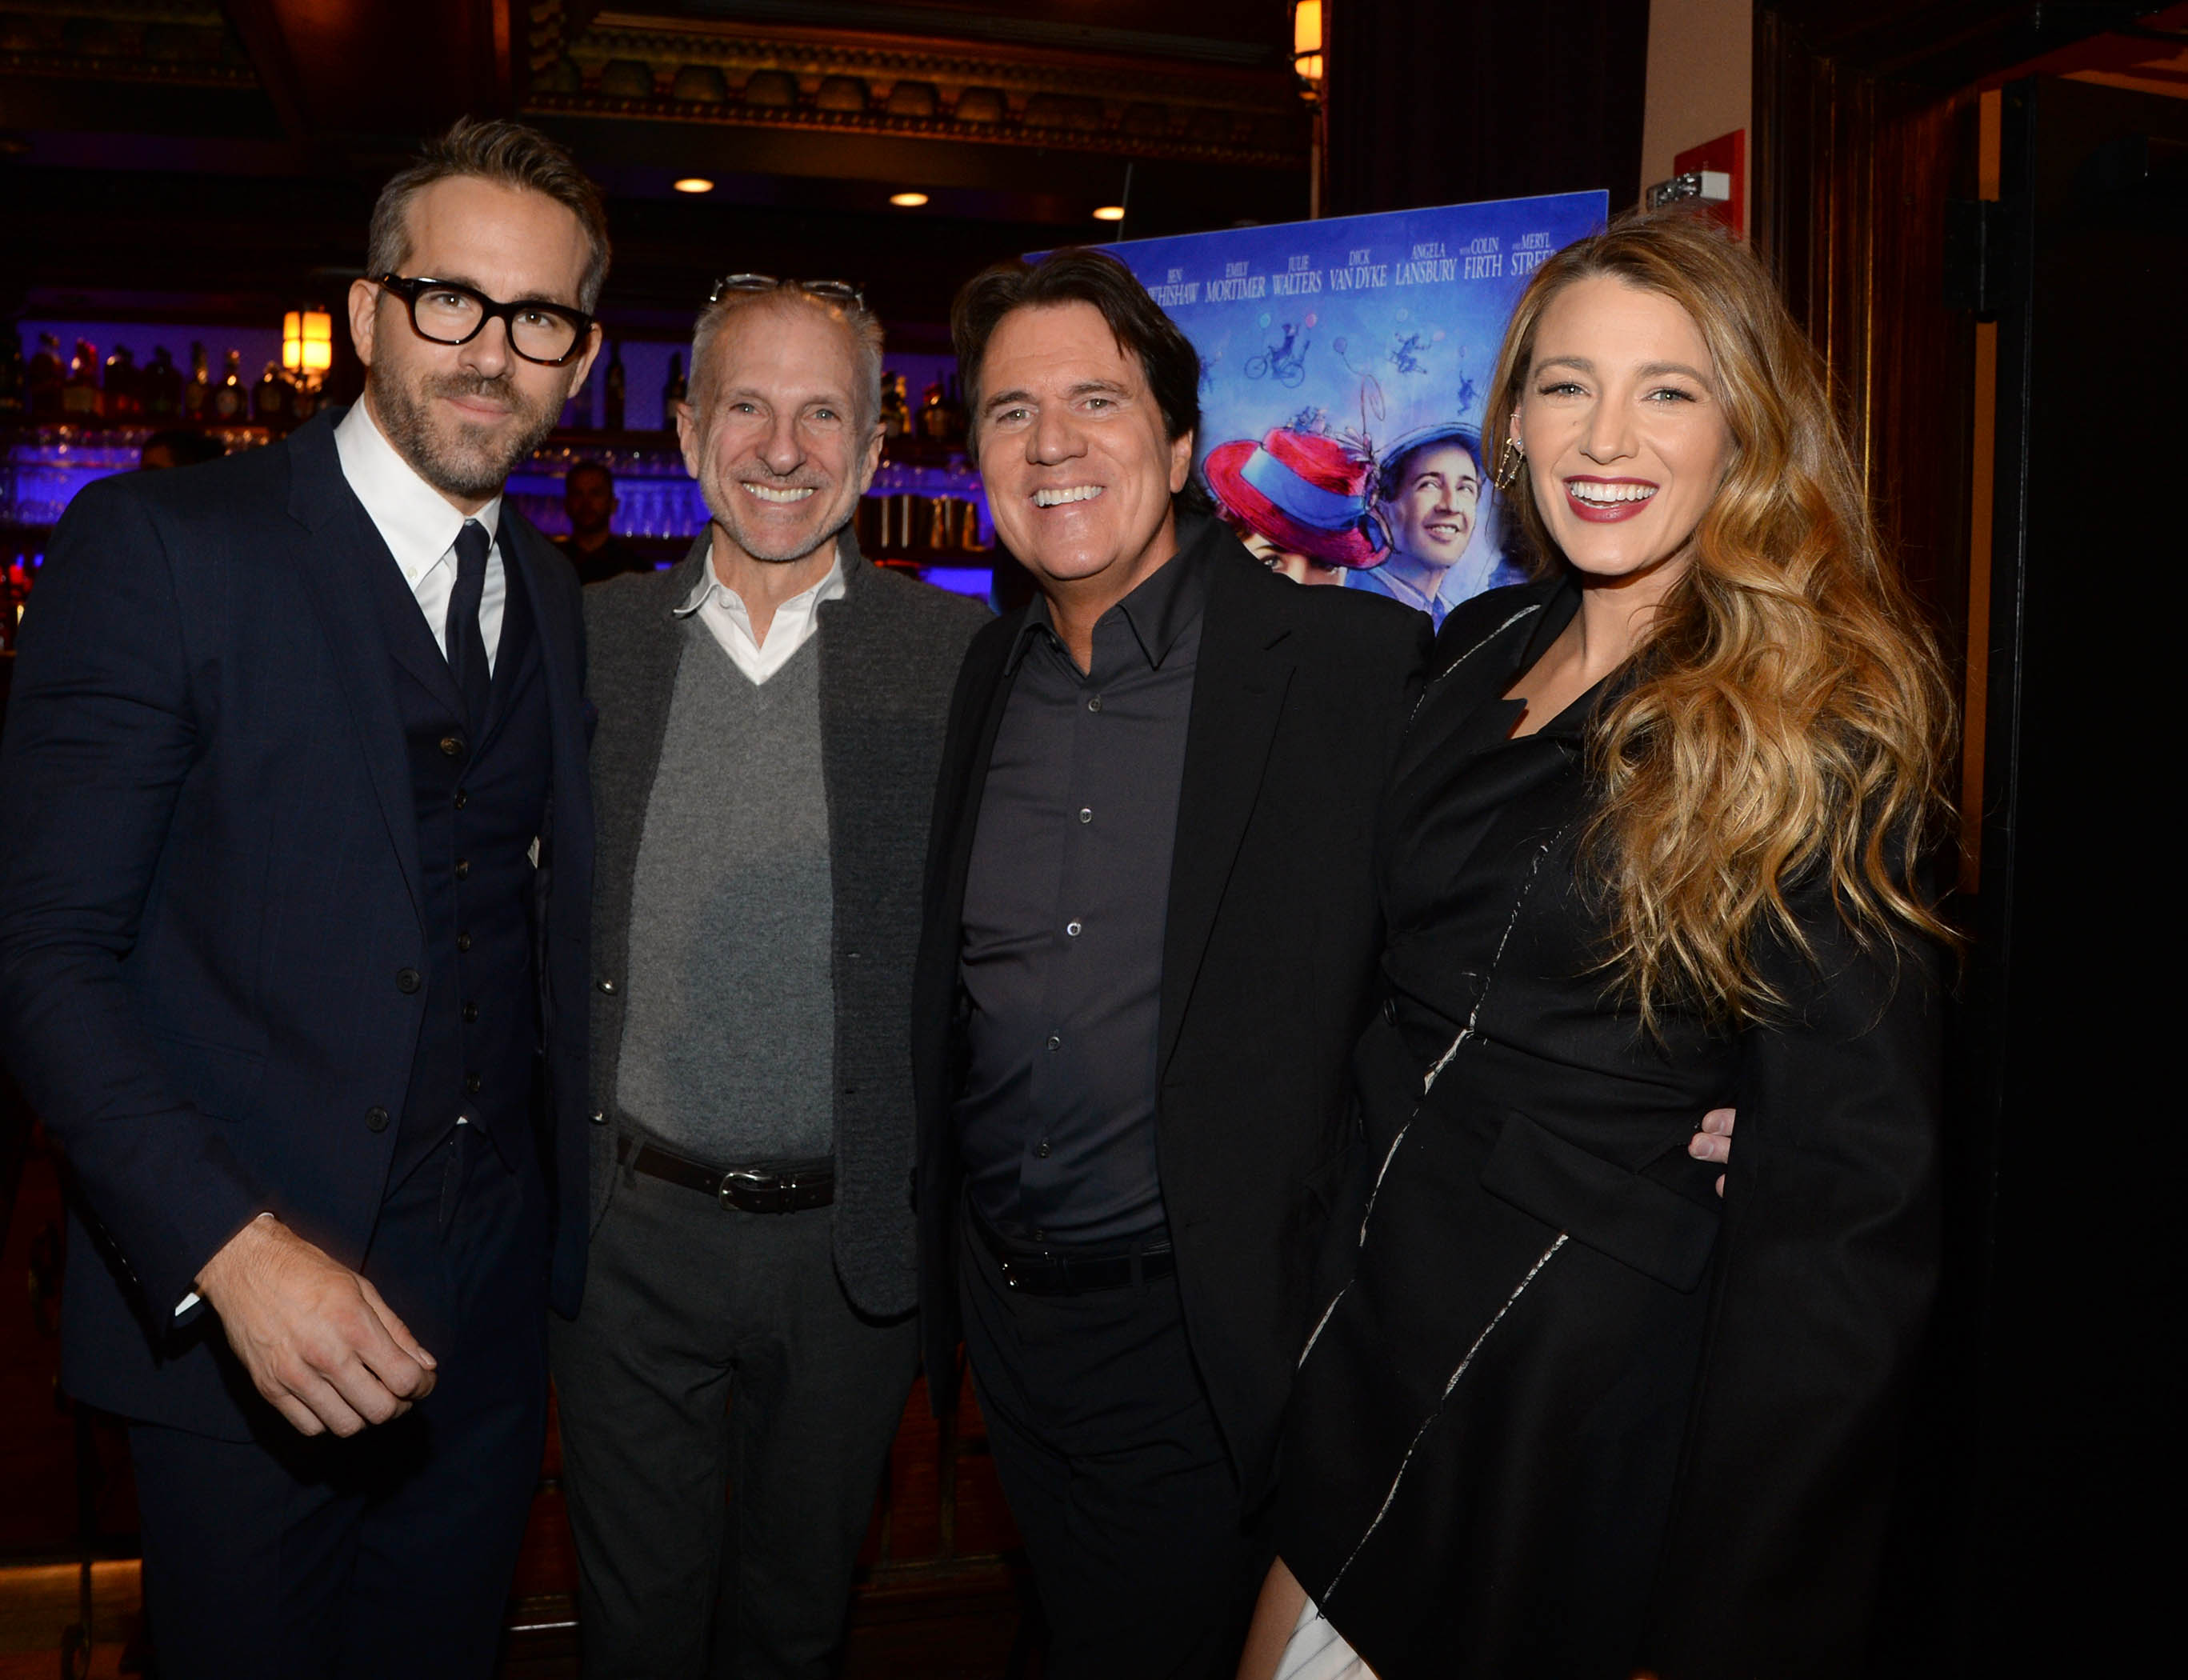 Blake Lively and Ryan Reynolds Host Screening of Mary Poppins Returns in New York for Emily Blunt and Filmmakers